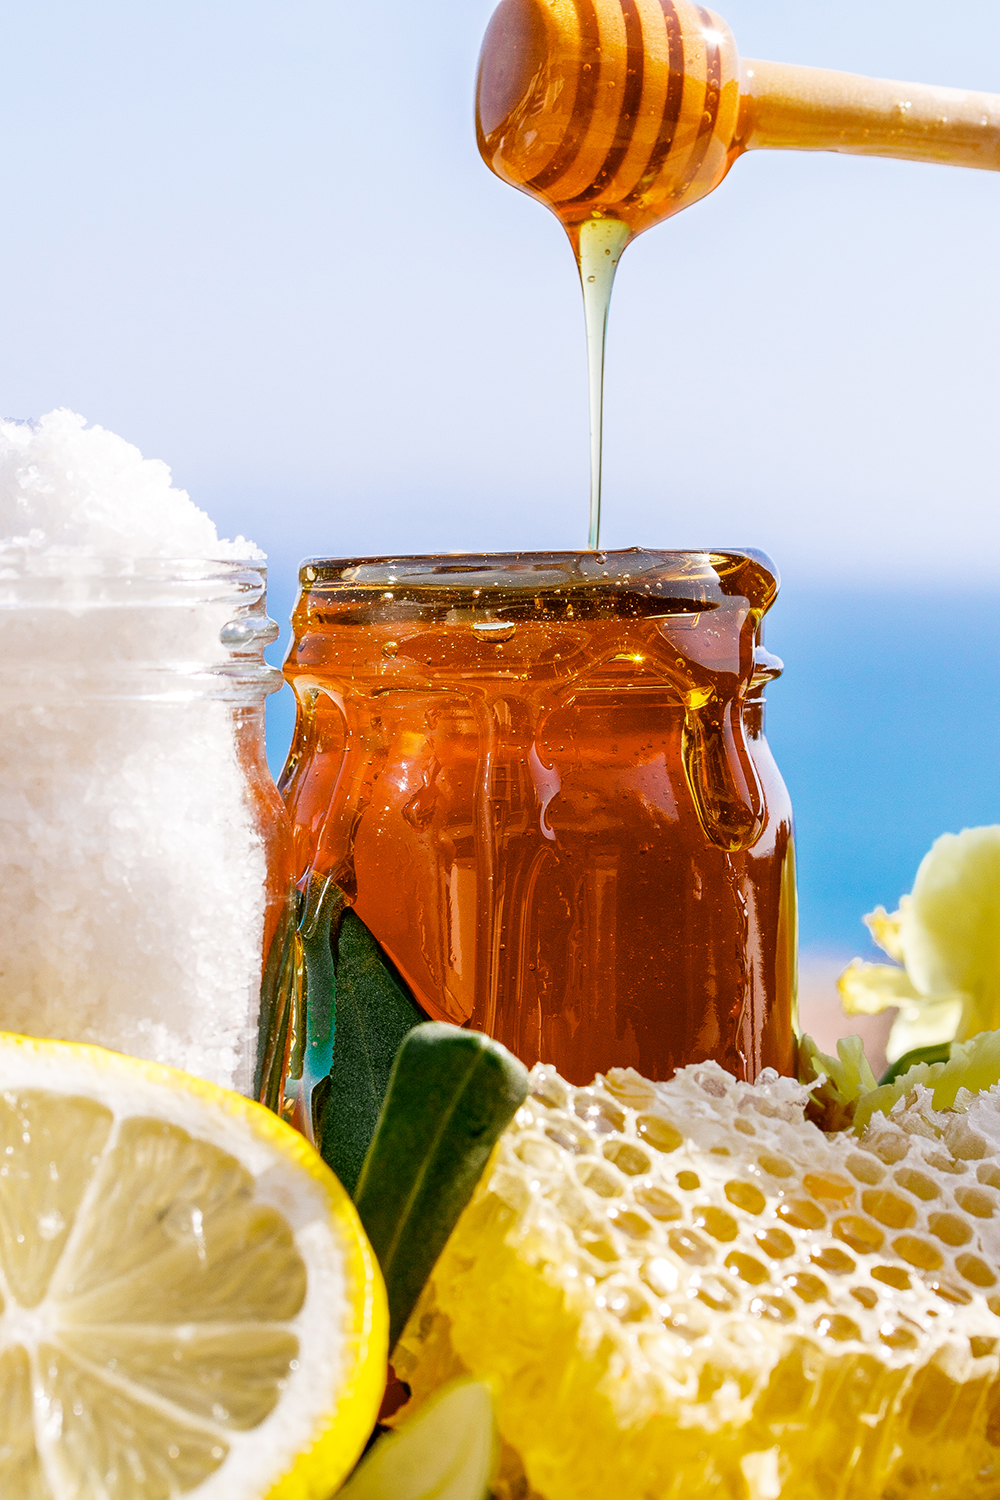 The Honey Body Bliss treatment was inspired by the resort's executive chef.